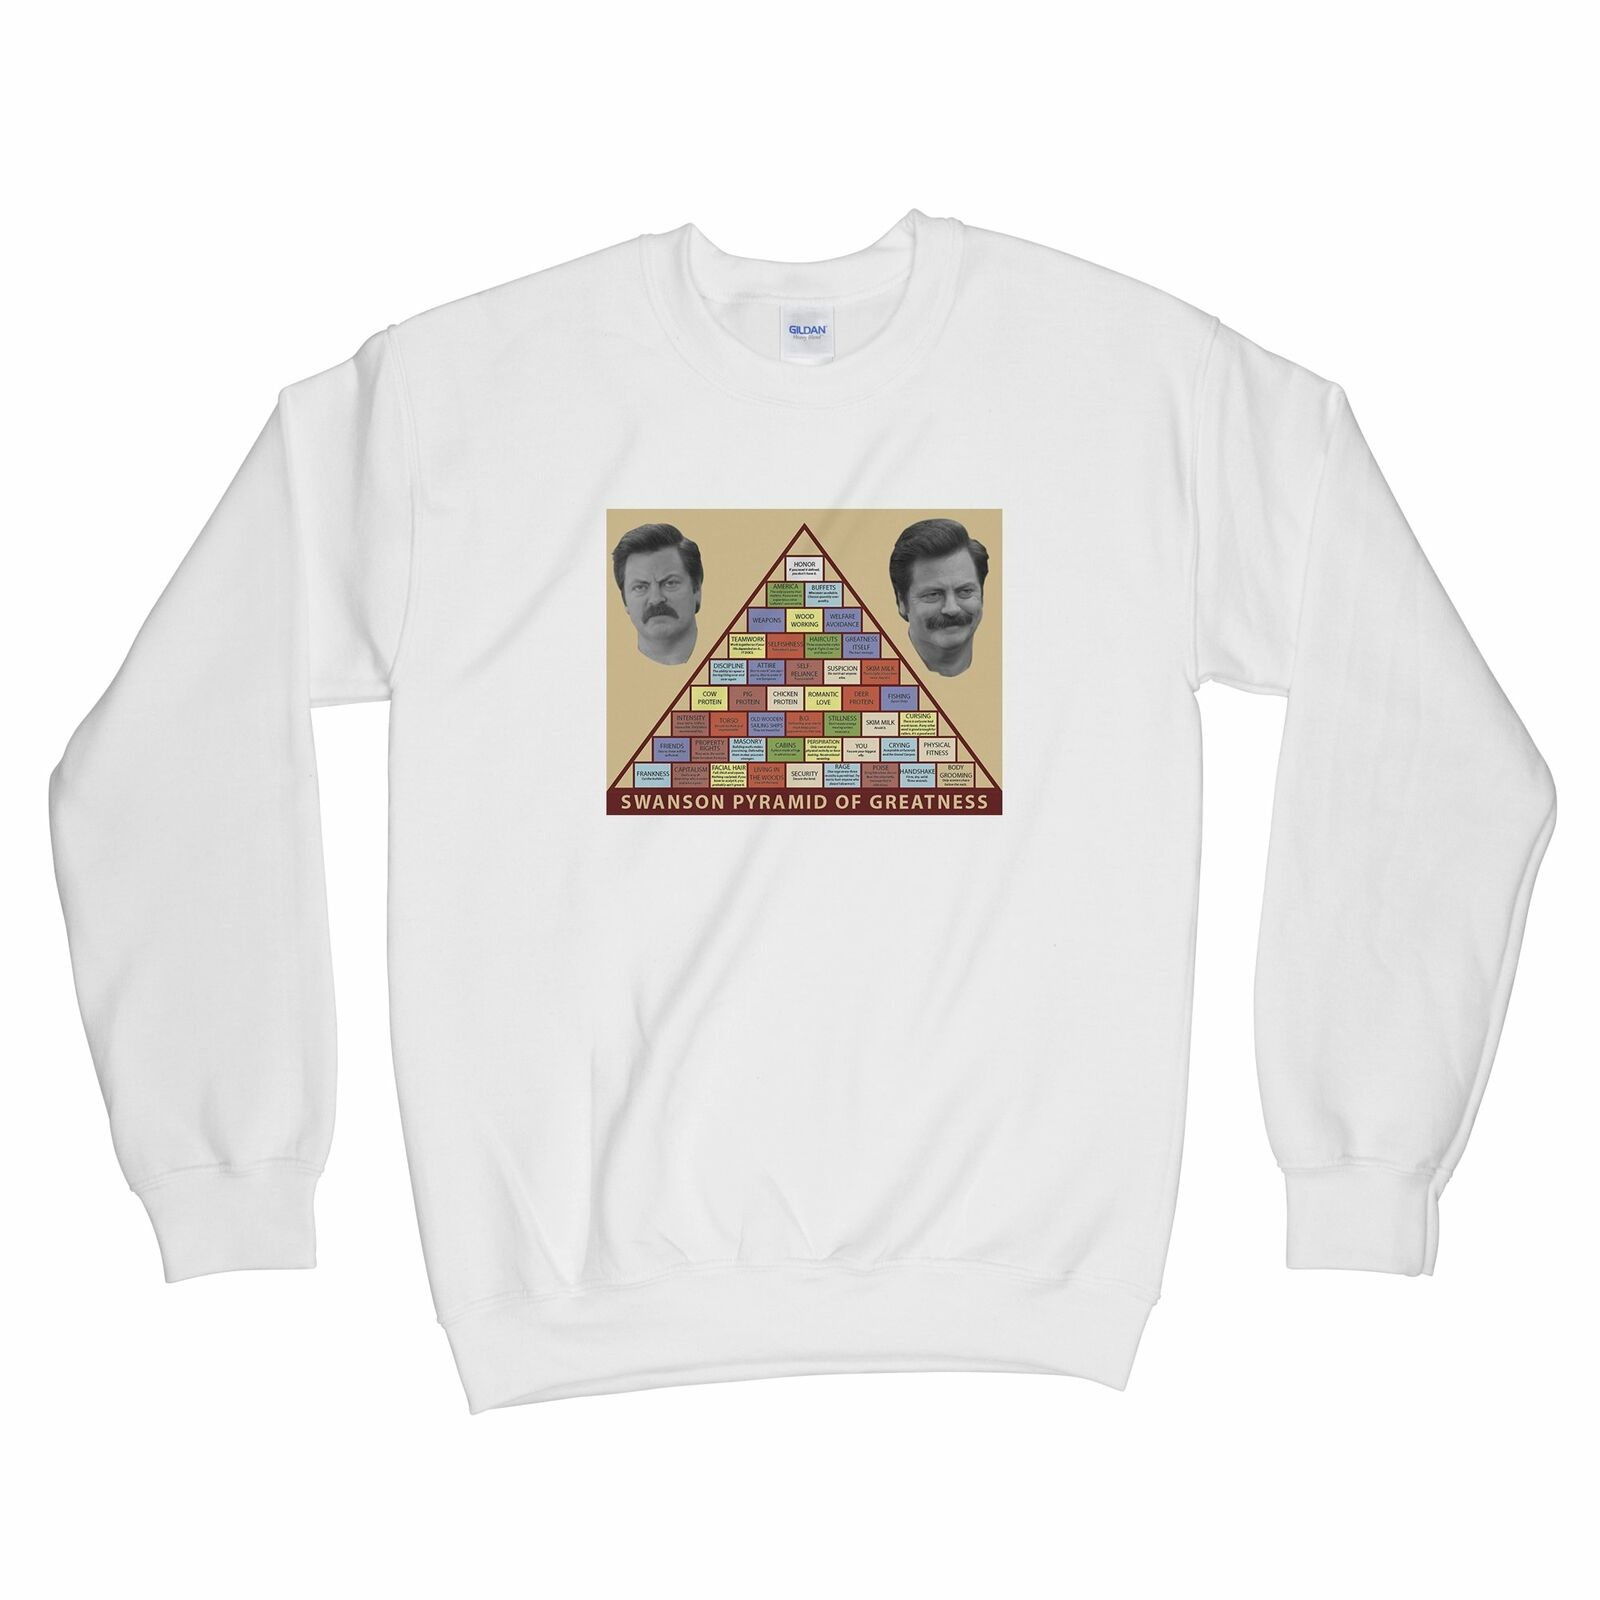 Ron Swanson Pyramid of Greatness Sweatshirt Ron Swanson